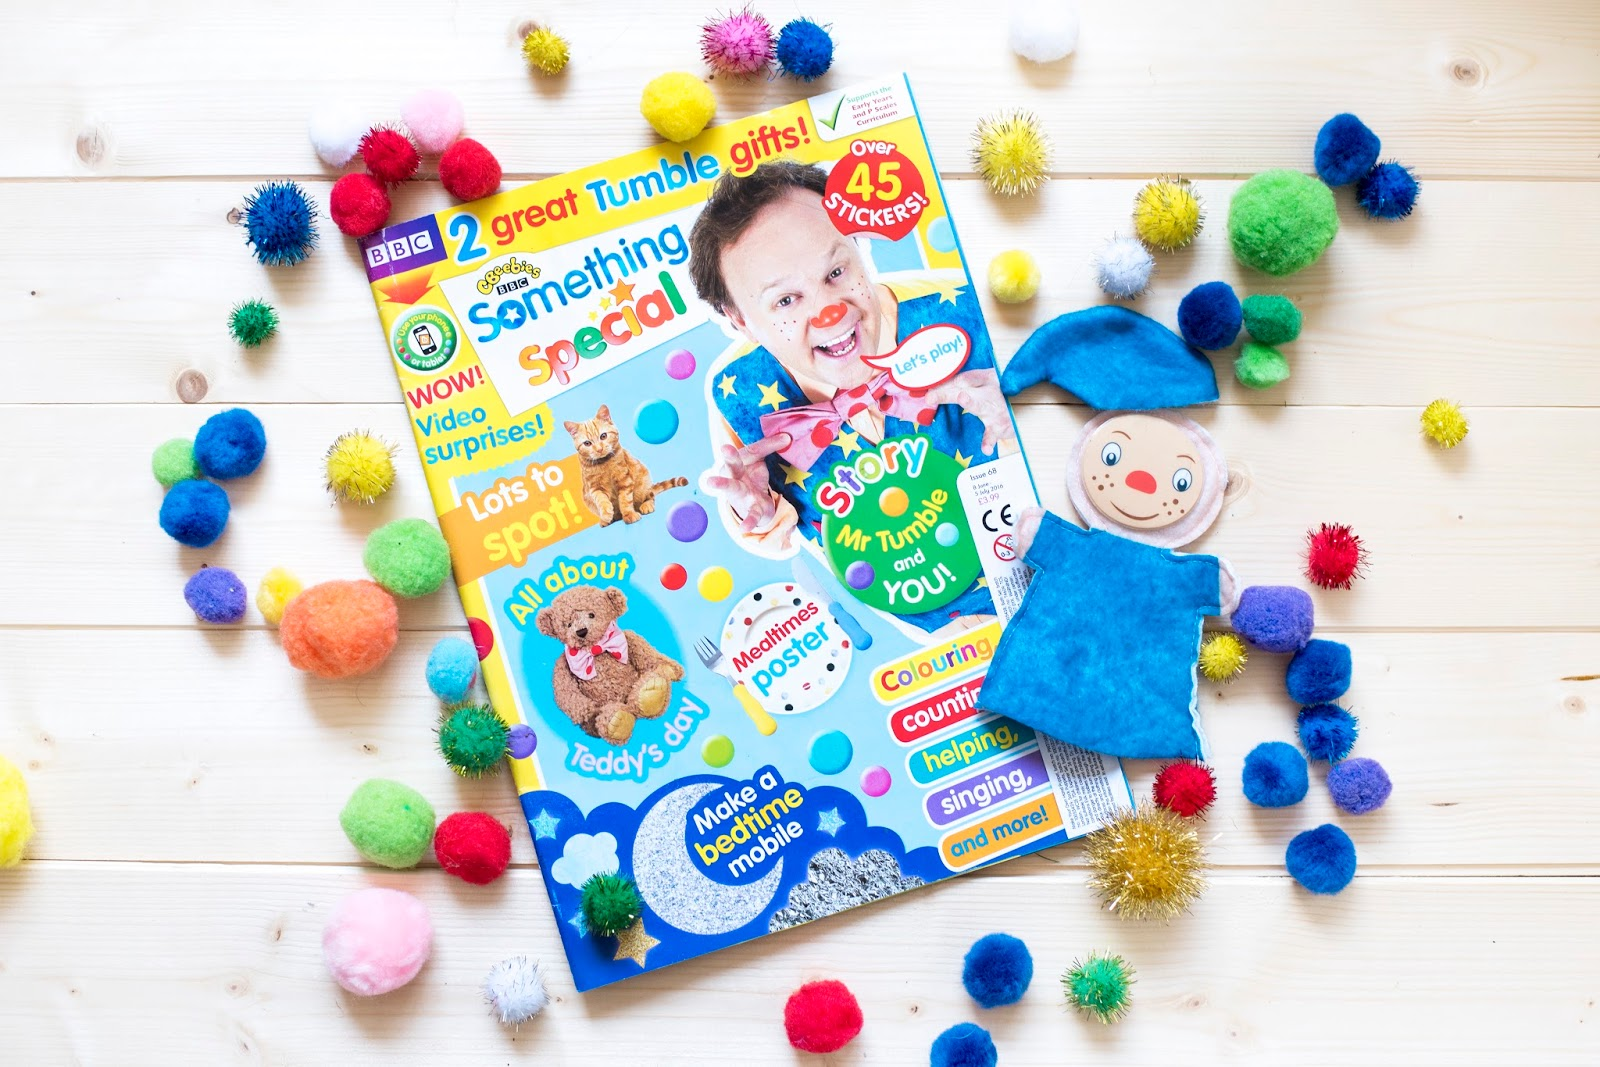 WE'RE ALL FRIENDS: MR. TUMBLE'S SOMETHING SPECIAL INTERACTIVE MAGAZINE